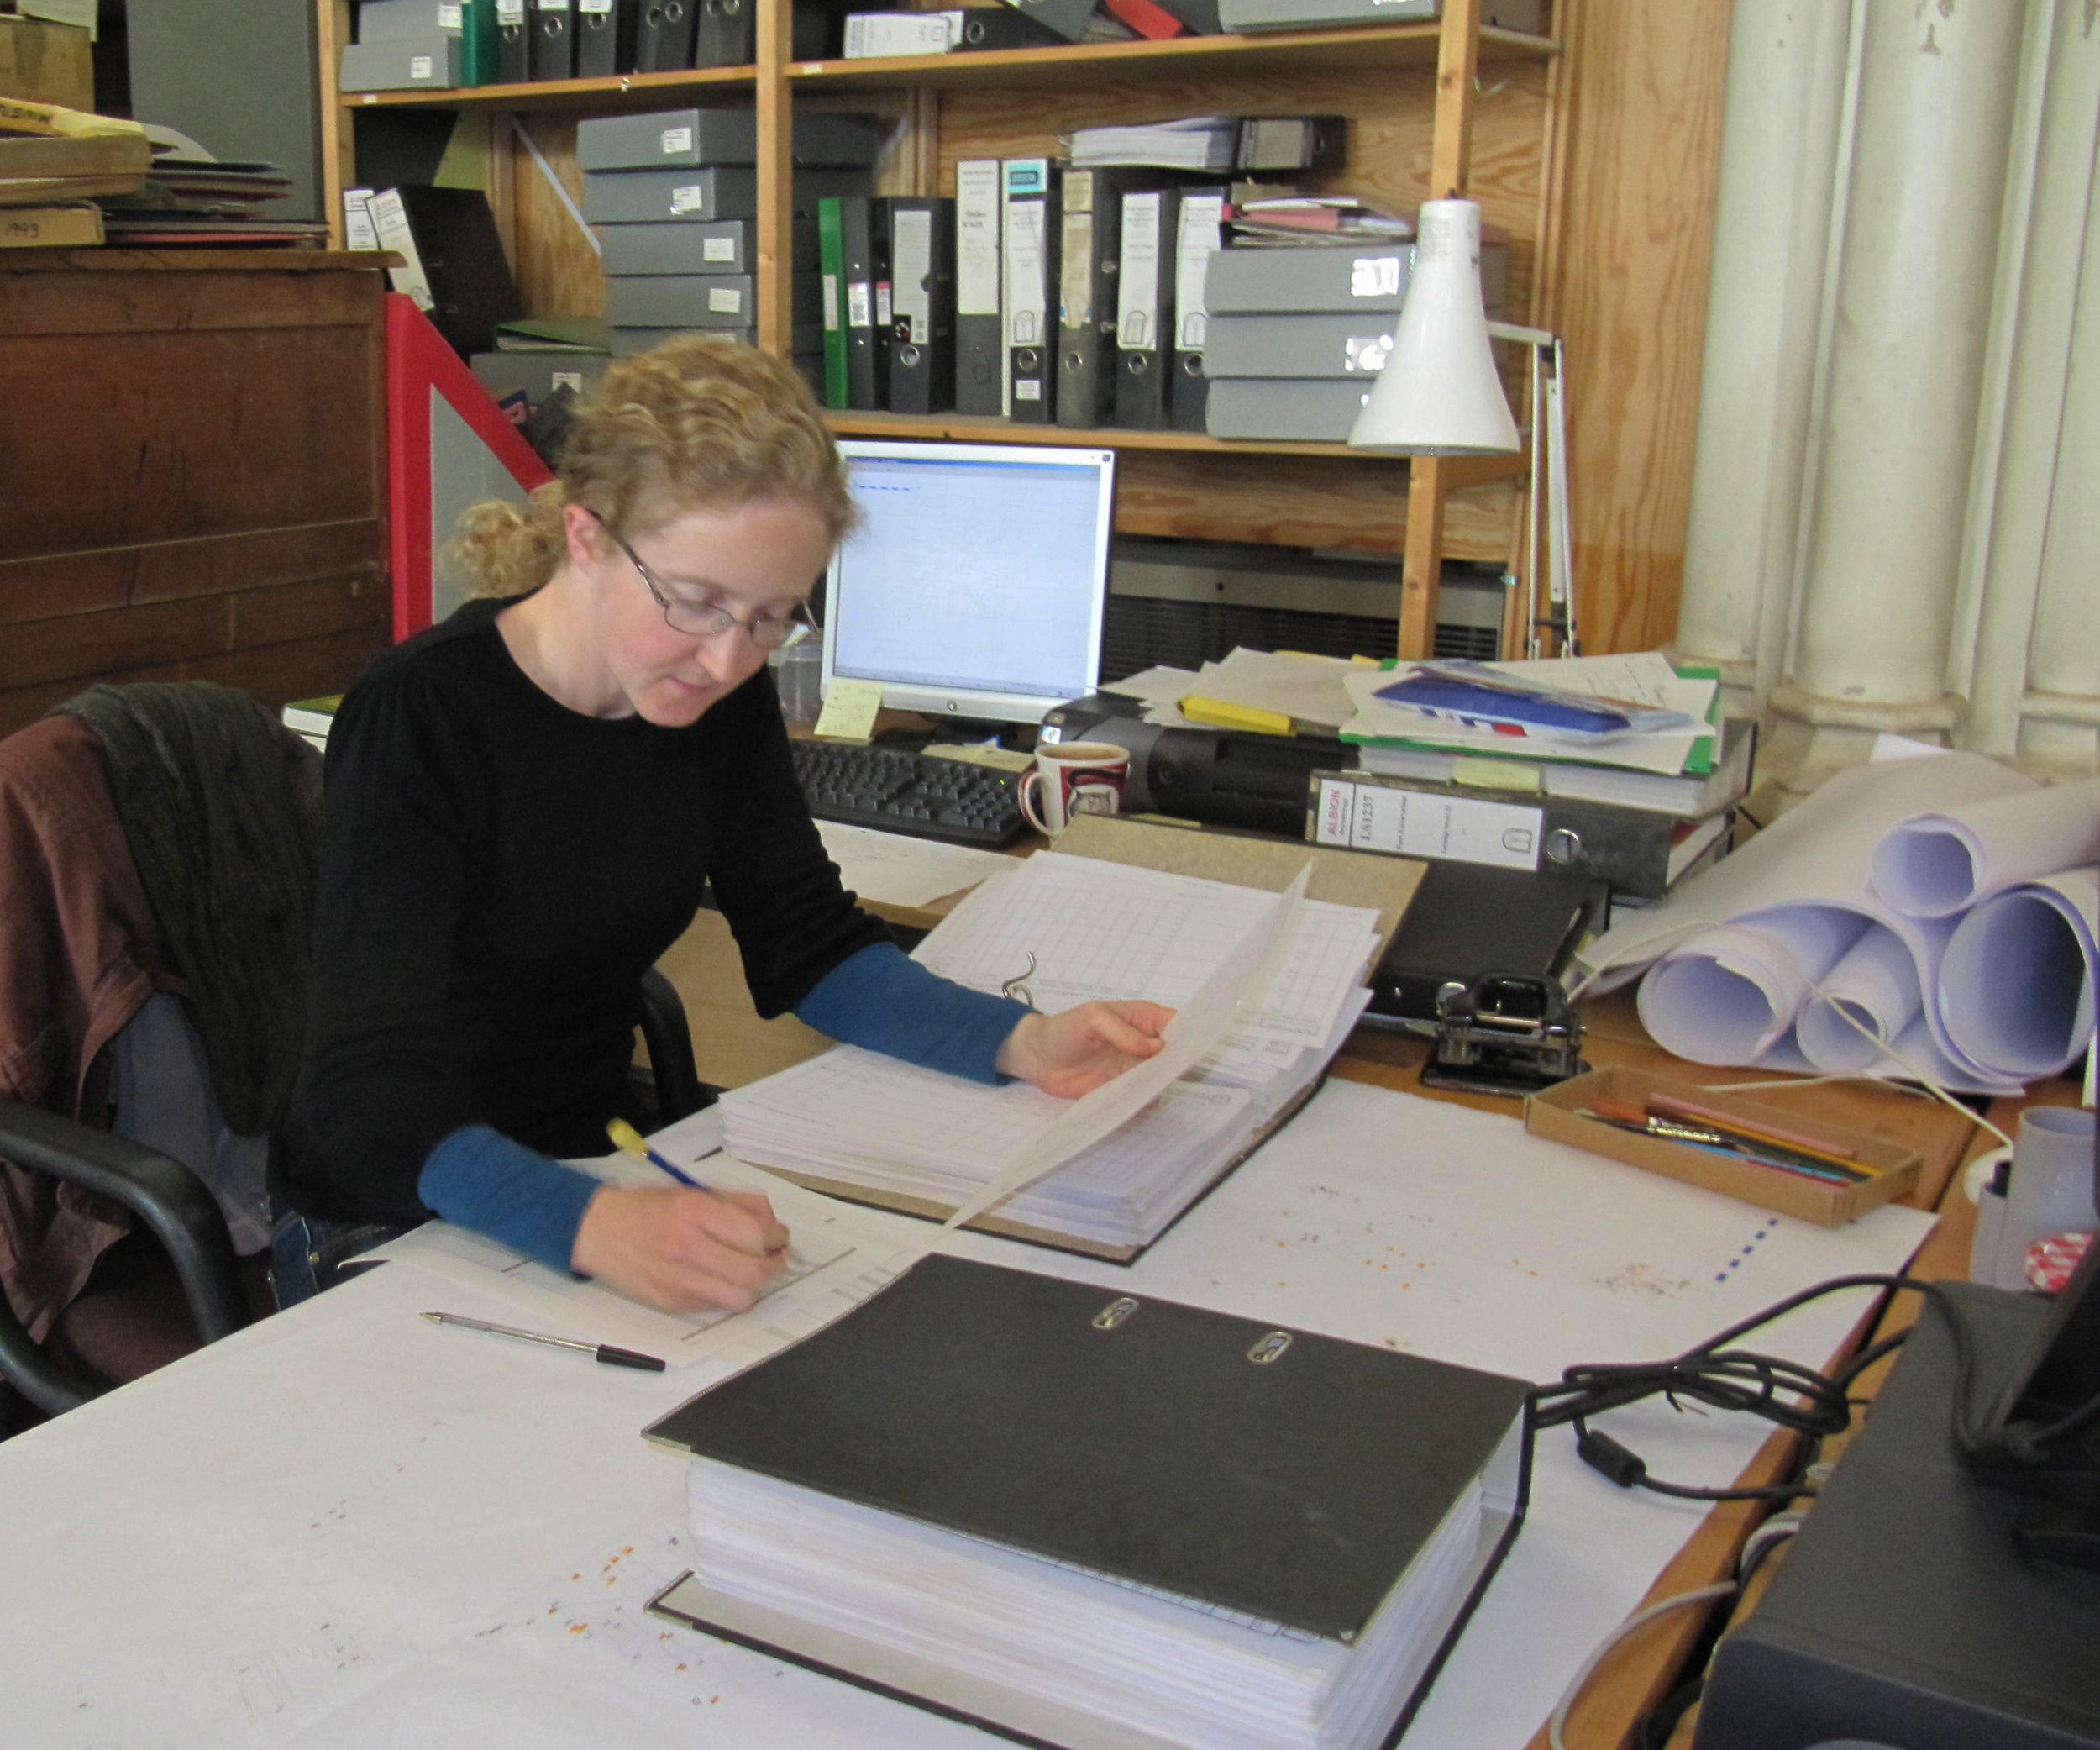 A member of the Albion Archaeology team working at the Albion Archaeology head office at St. Mary's Church, Bedford